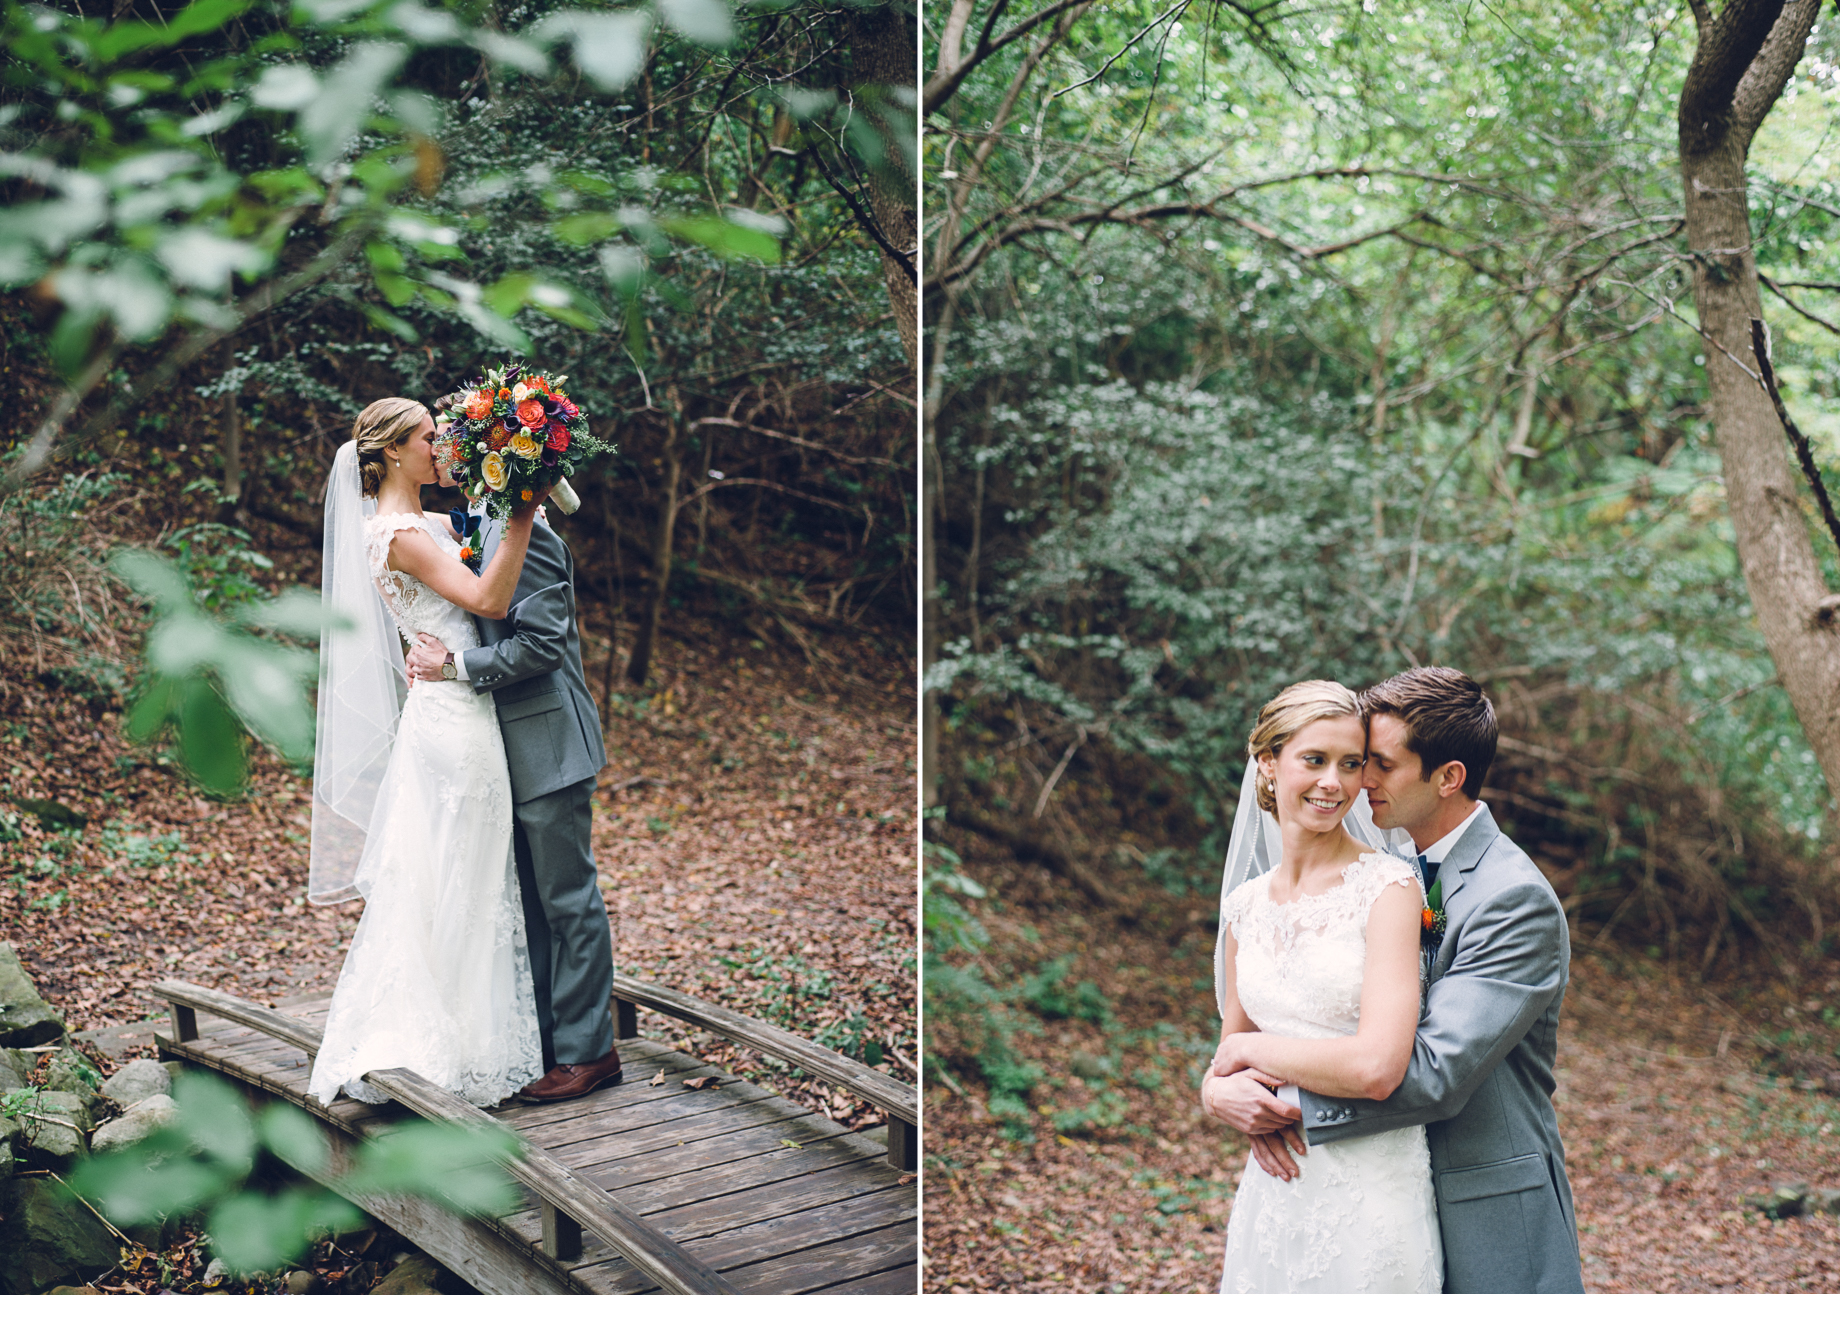 Kissing in Forest